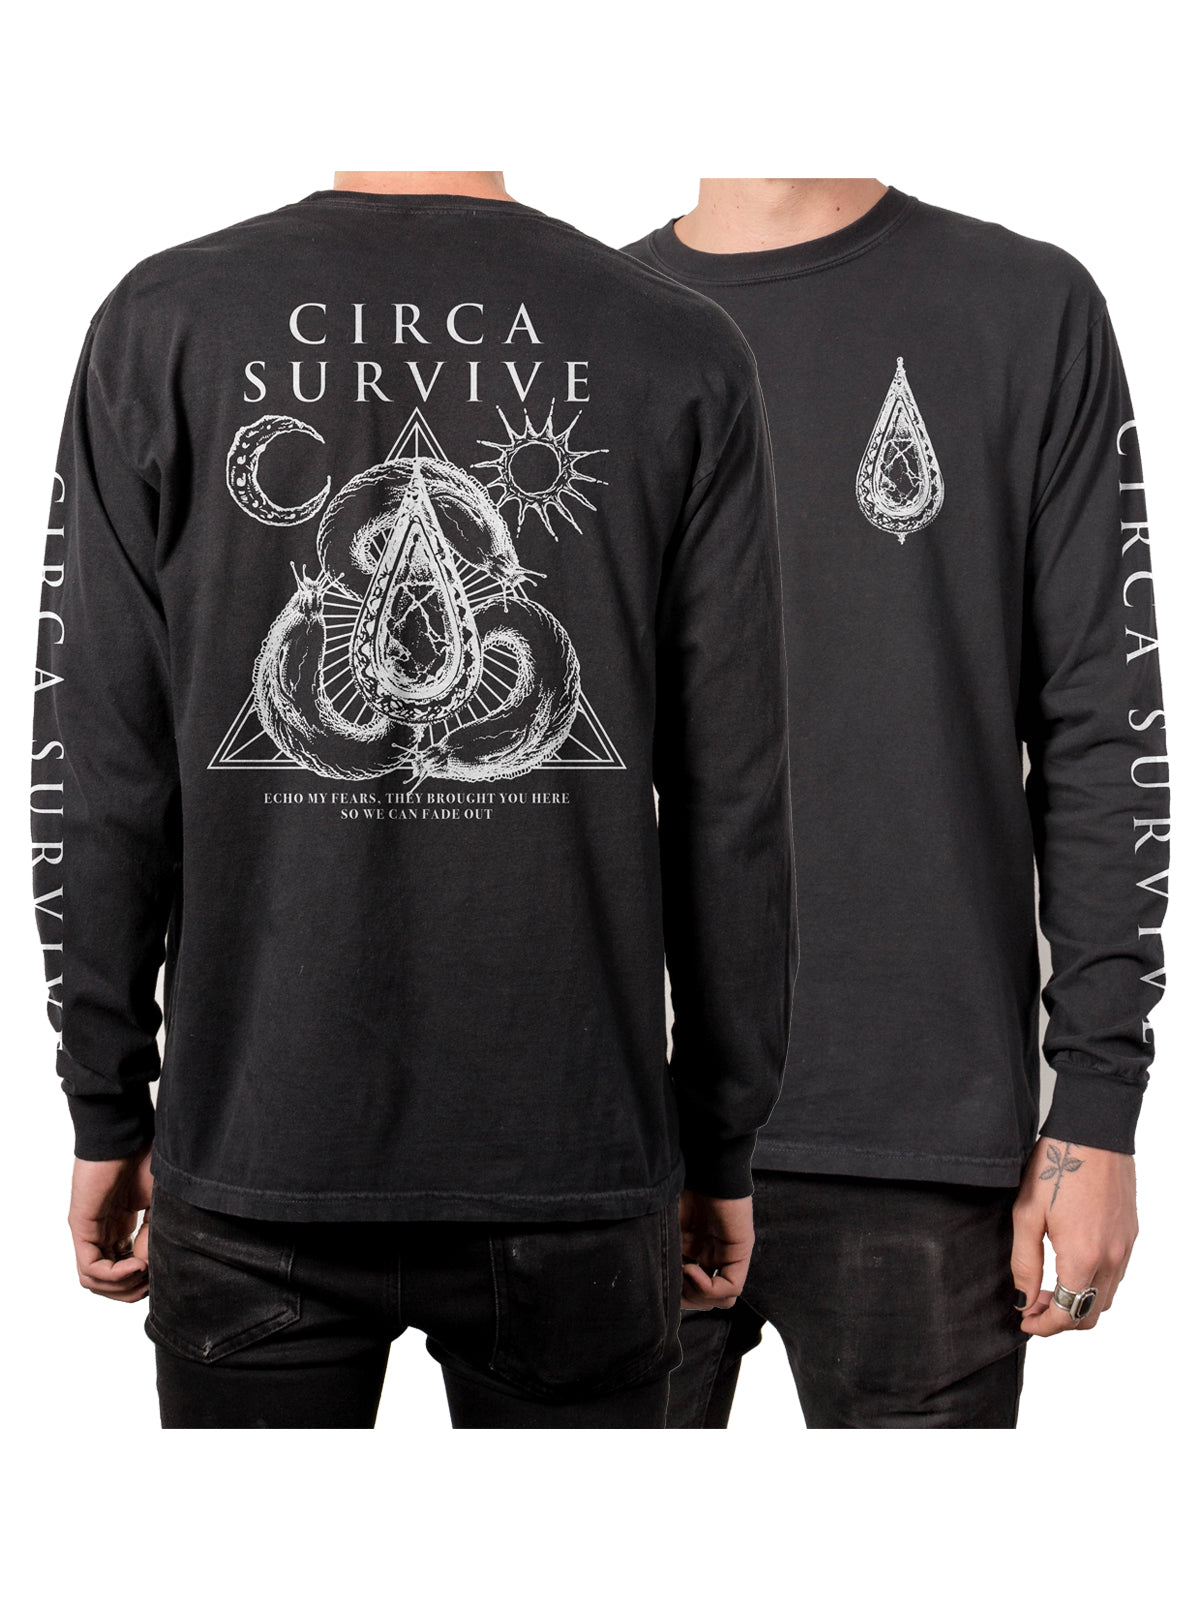 Circa Survive - Echo My Fears Vintage Longsleeve Shirt - Merch Limited